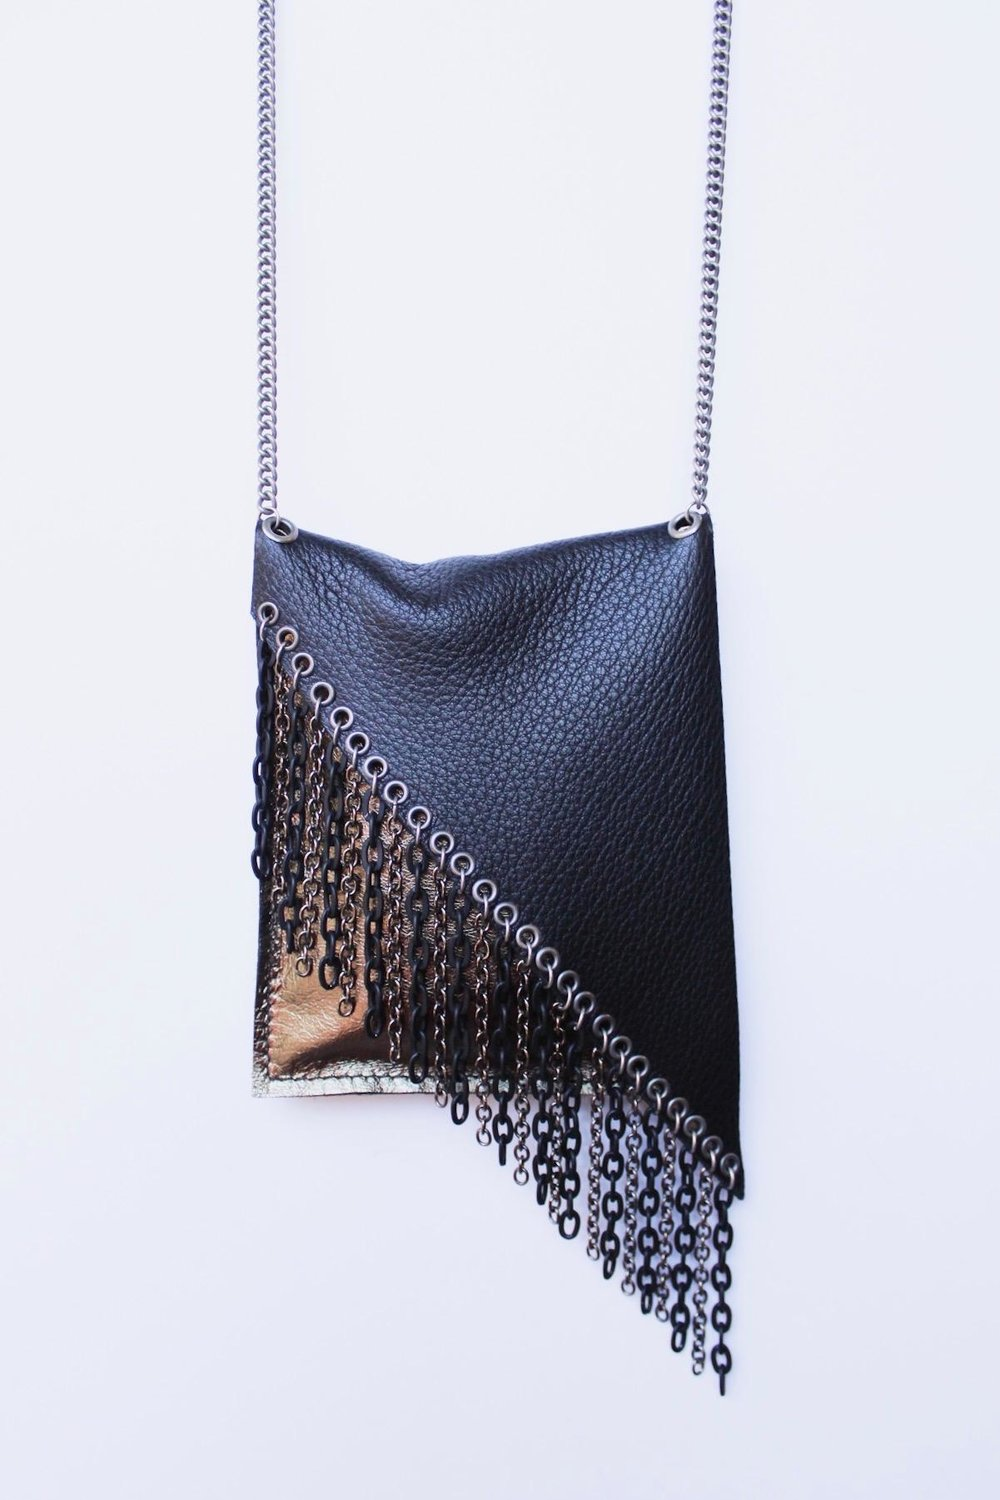 Second is Bronze metallic lambskin bag with black deerskin flap embellished with multi chain fringe.  $128..jpg